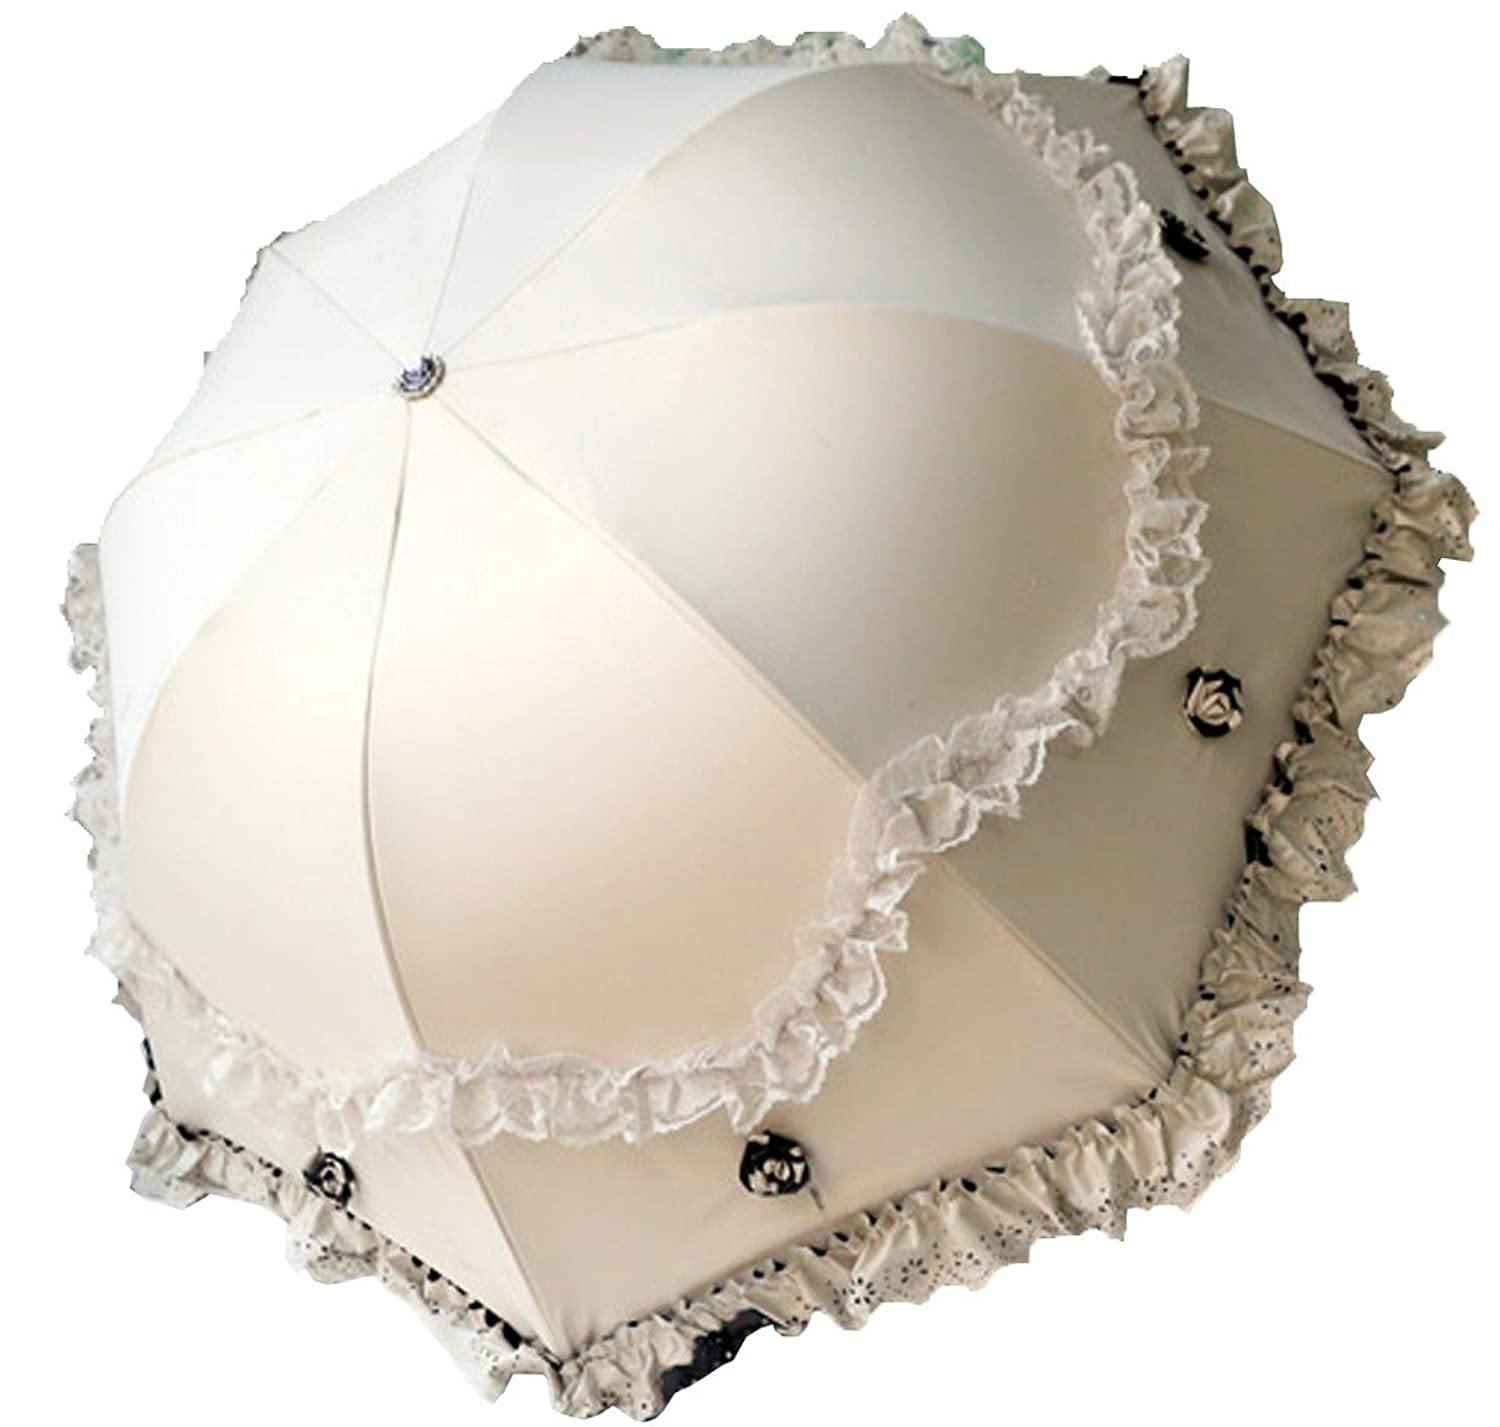 Make a Victorian Carriage Parasol Supergirl Women Parasol Travel Compact Lace Sunshade Anti-UV Windproof Rain Umbrella $28.99 AT vintagedancer.com